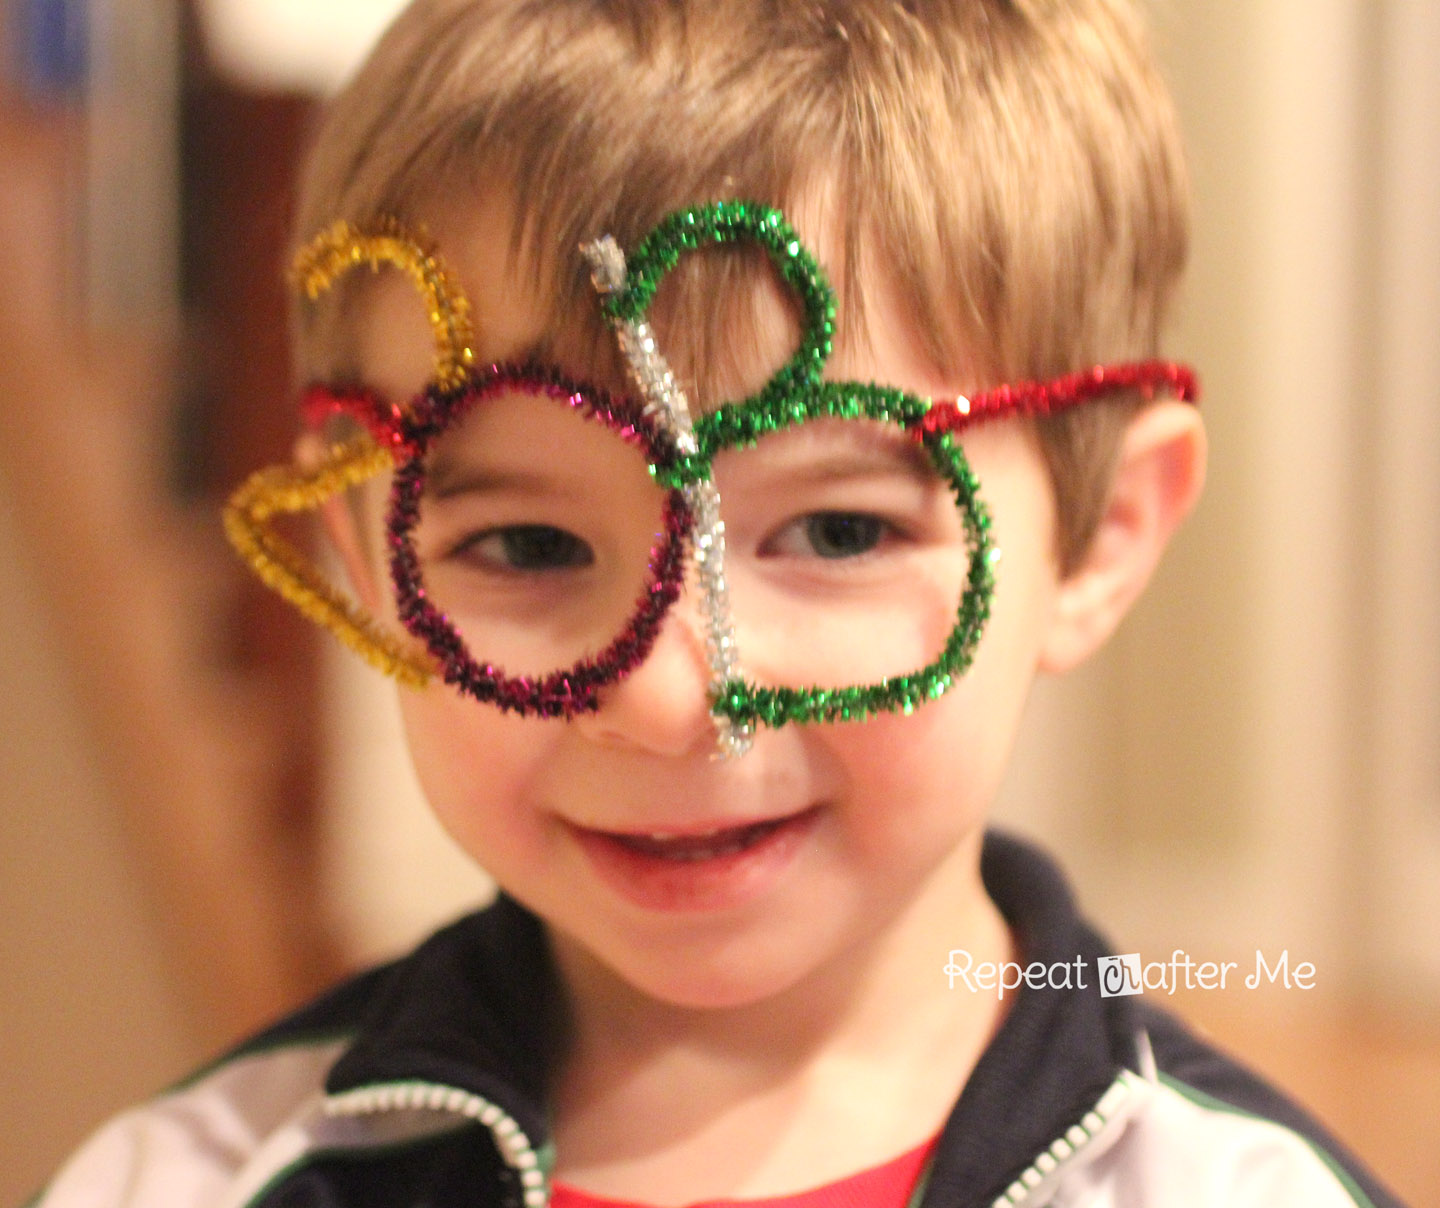 2013 Pipe Cleaner Glasses Repeat Crafter Me